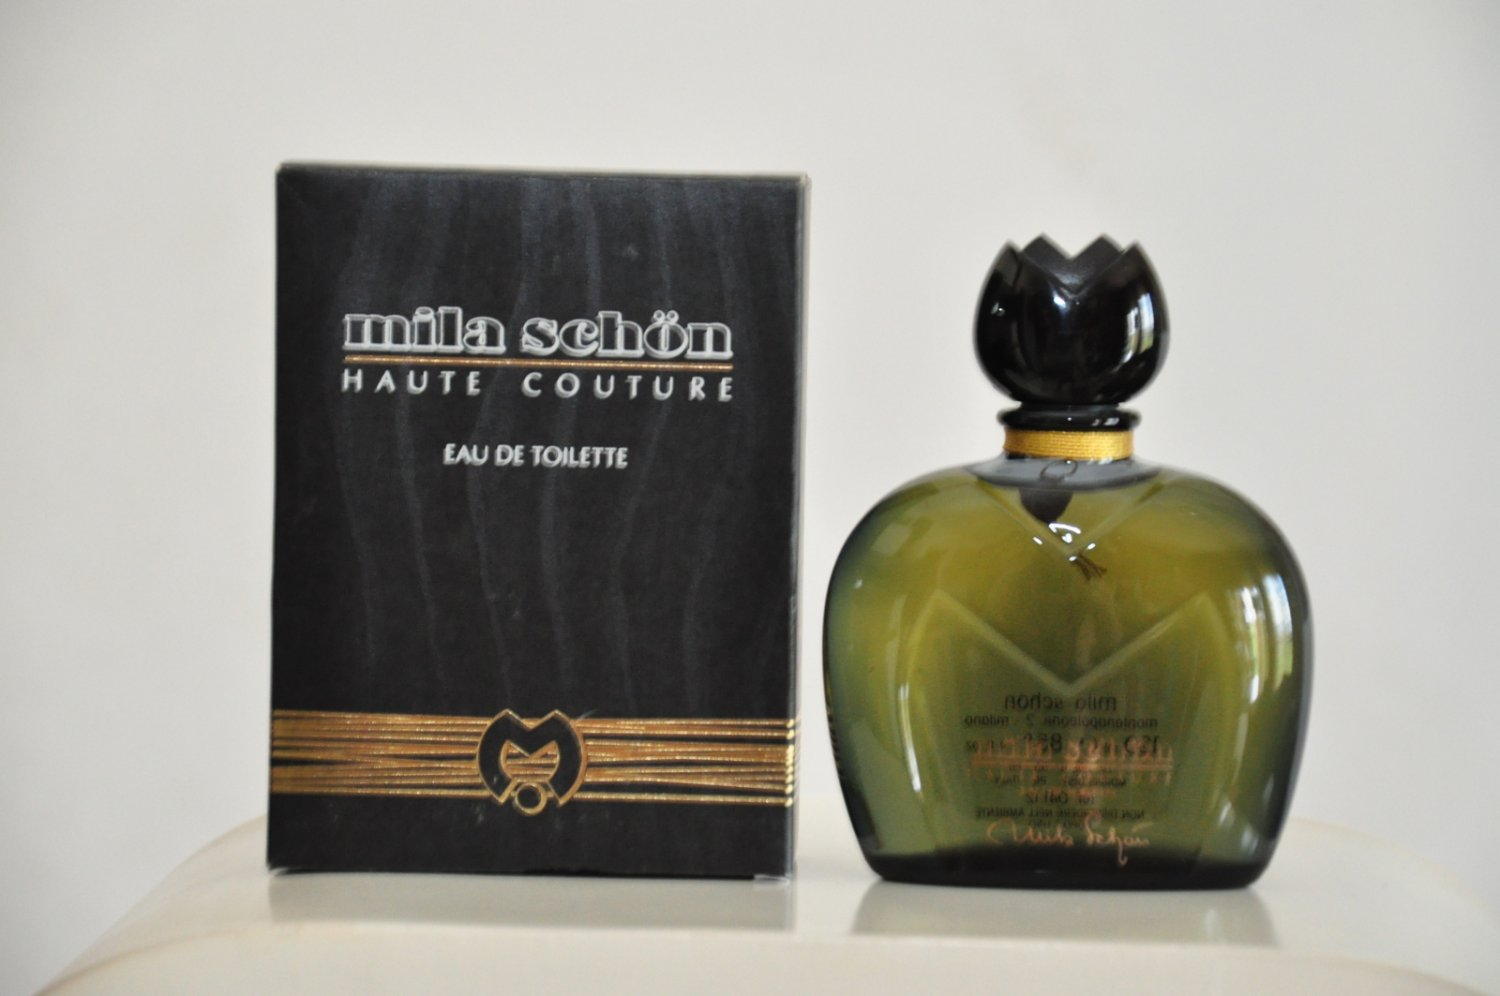 Mila Schön Haute Couture Eau de toilette for woman Edt 120ML 4 Fl. Oz. Rare Vintage 1981